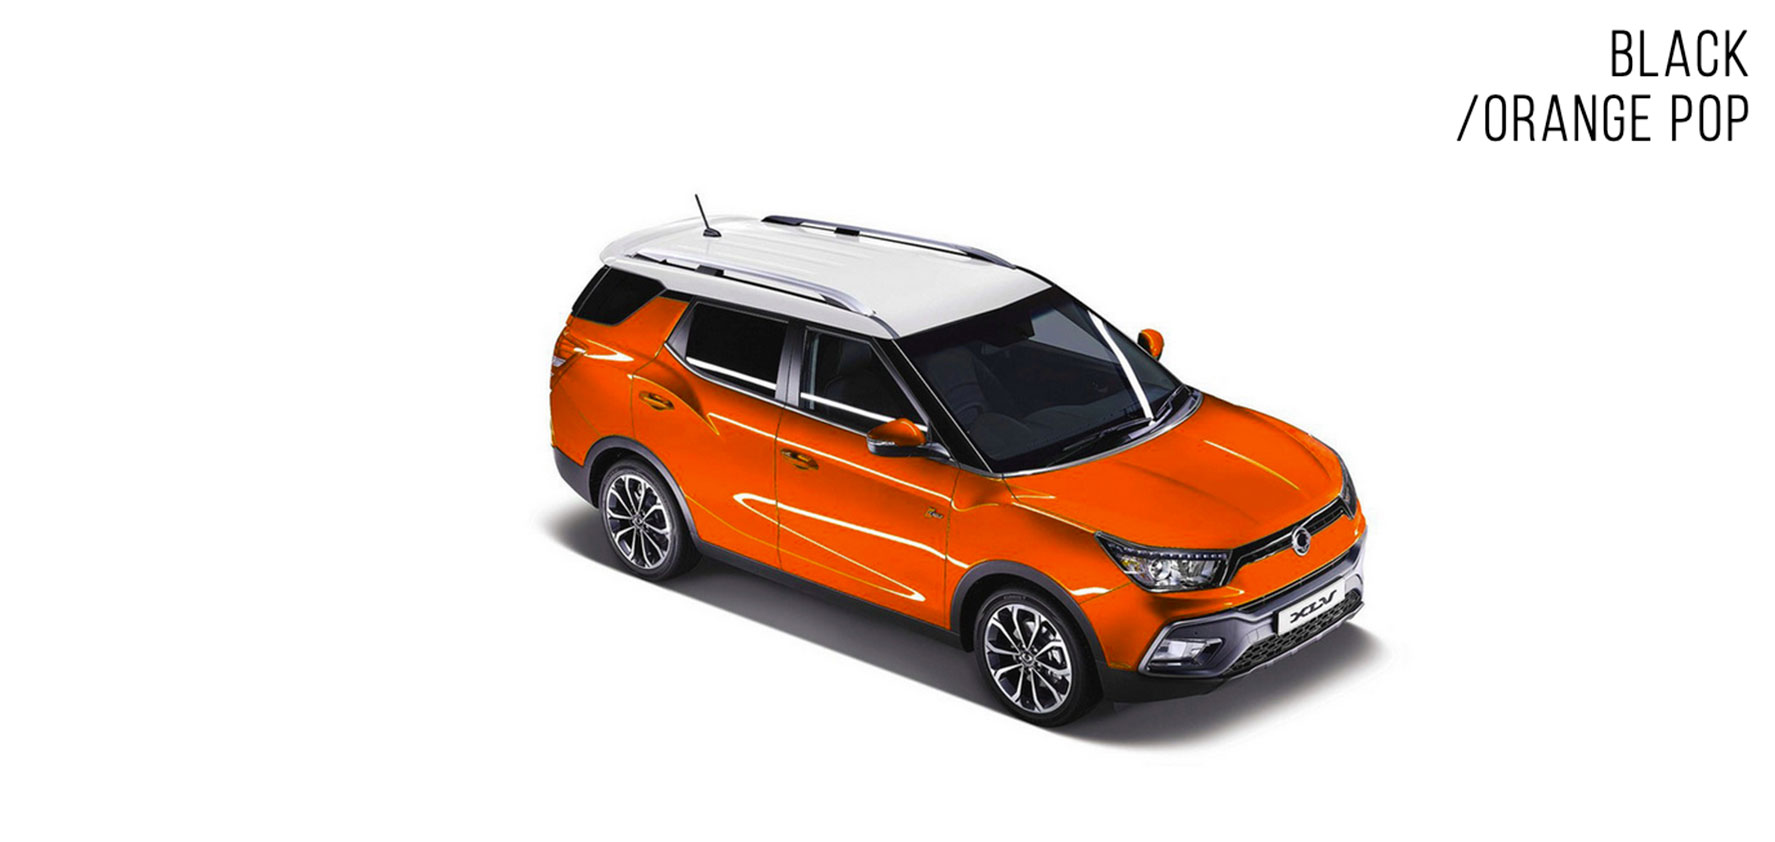 xlv-ssangyong-black-orange-pop